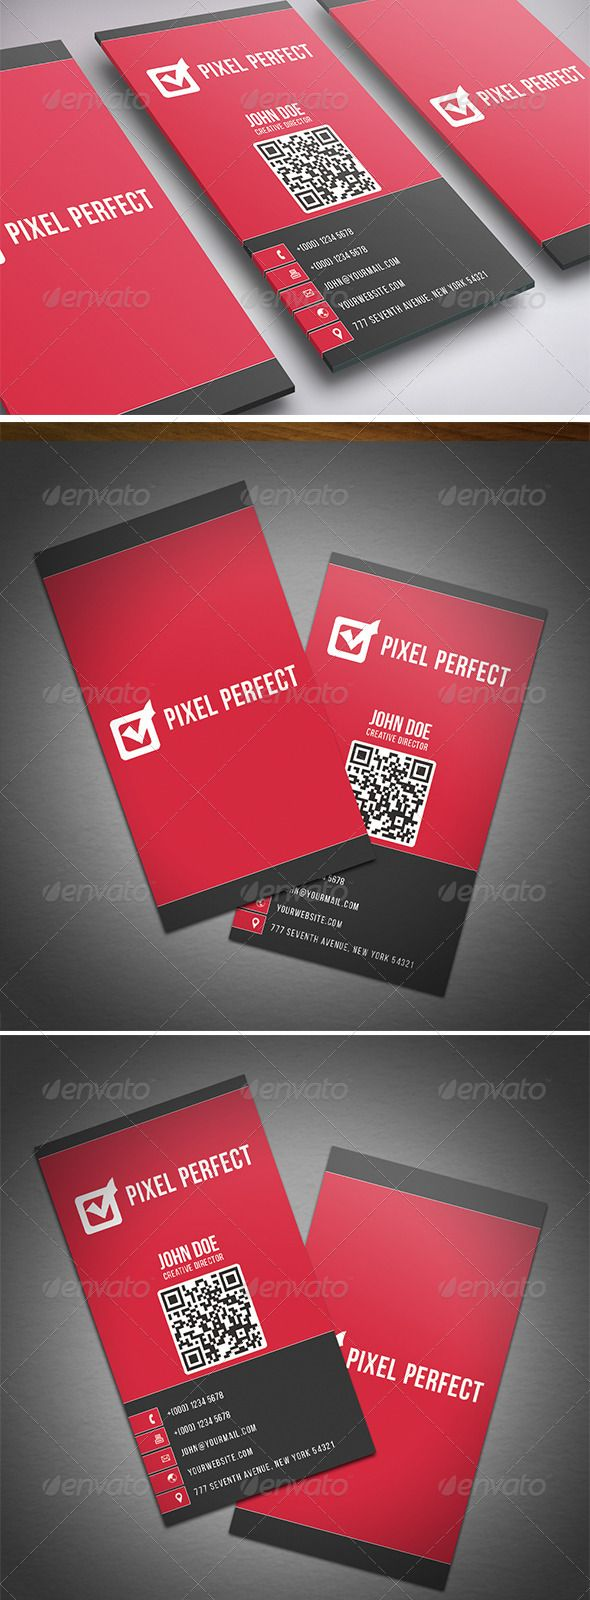 How To Print Double Sided Business Cards At Home | Best Business Cards